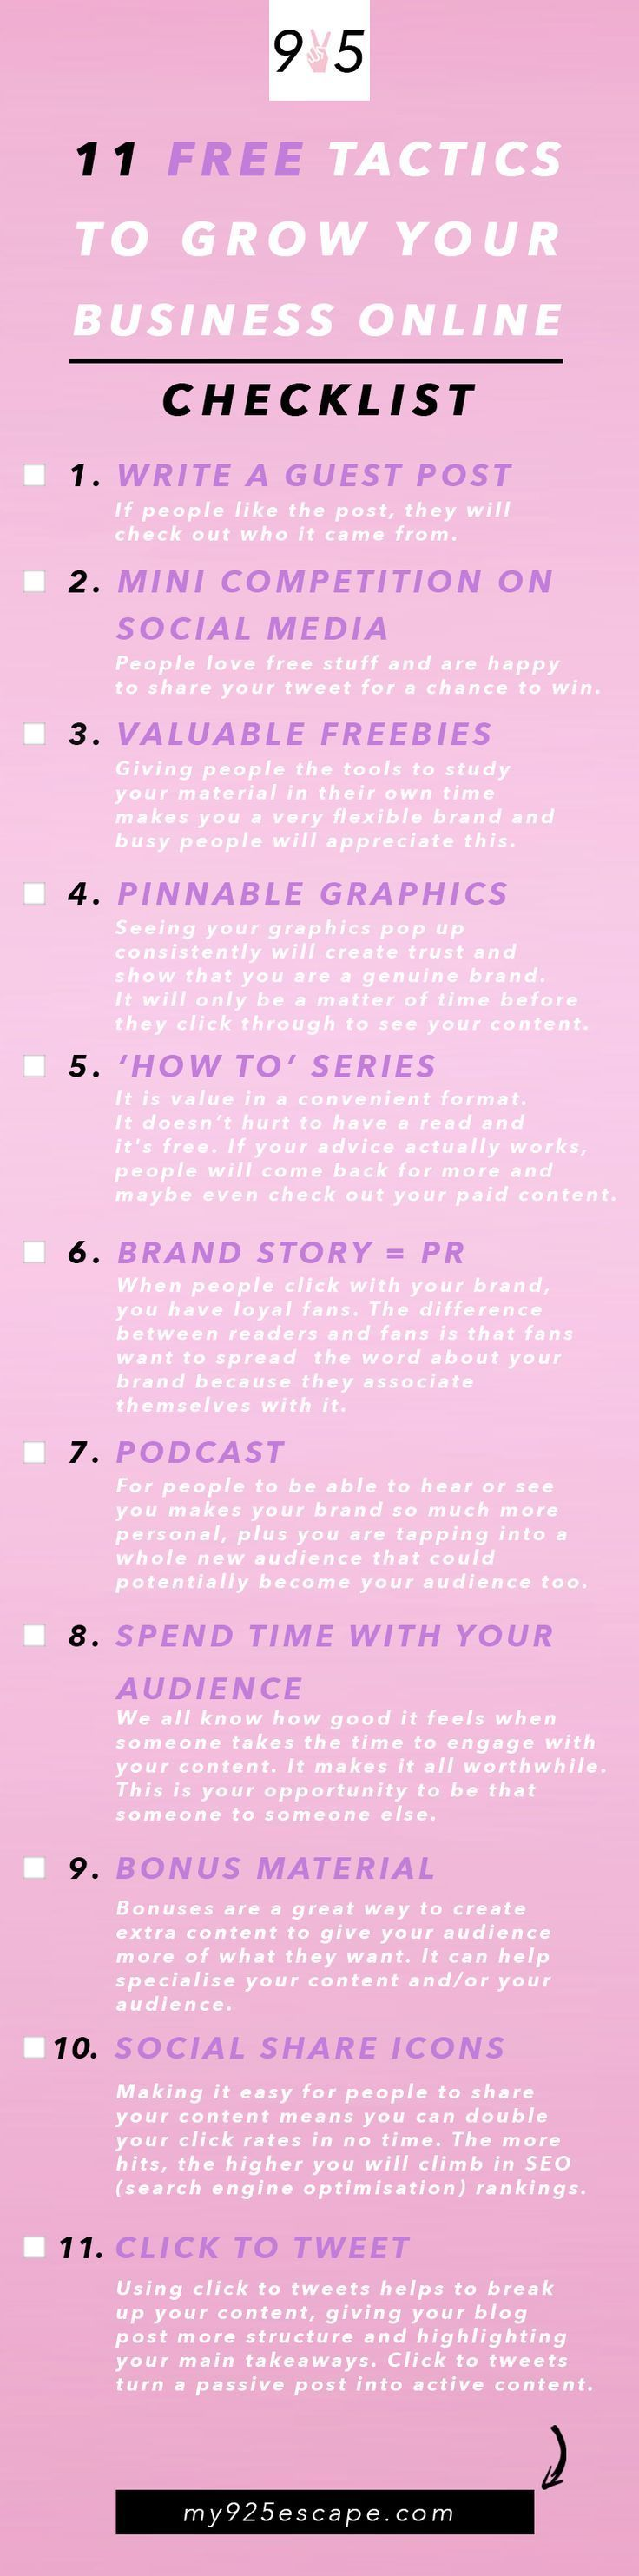 Build A Brand, How To Find A Profitable Idea, Blogging, Business, Brand Advice, Blogging Tips For Entrepreneurs, Grow Your Email List, Morning Routine, Routines Of Successful Entrepreneurs, Free Course, Ecourse, Add Value To Your Audience, Free Resources, Free Resource Library, Worksheets, Templates, Motivation, Quotes, Motivational Quotes, Success, Business Tips, Femtrepreneur , Female Entrepreneur